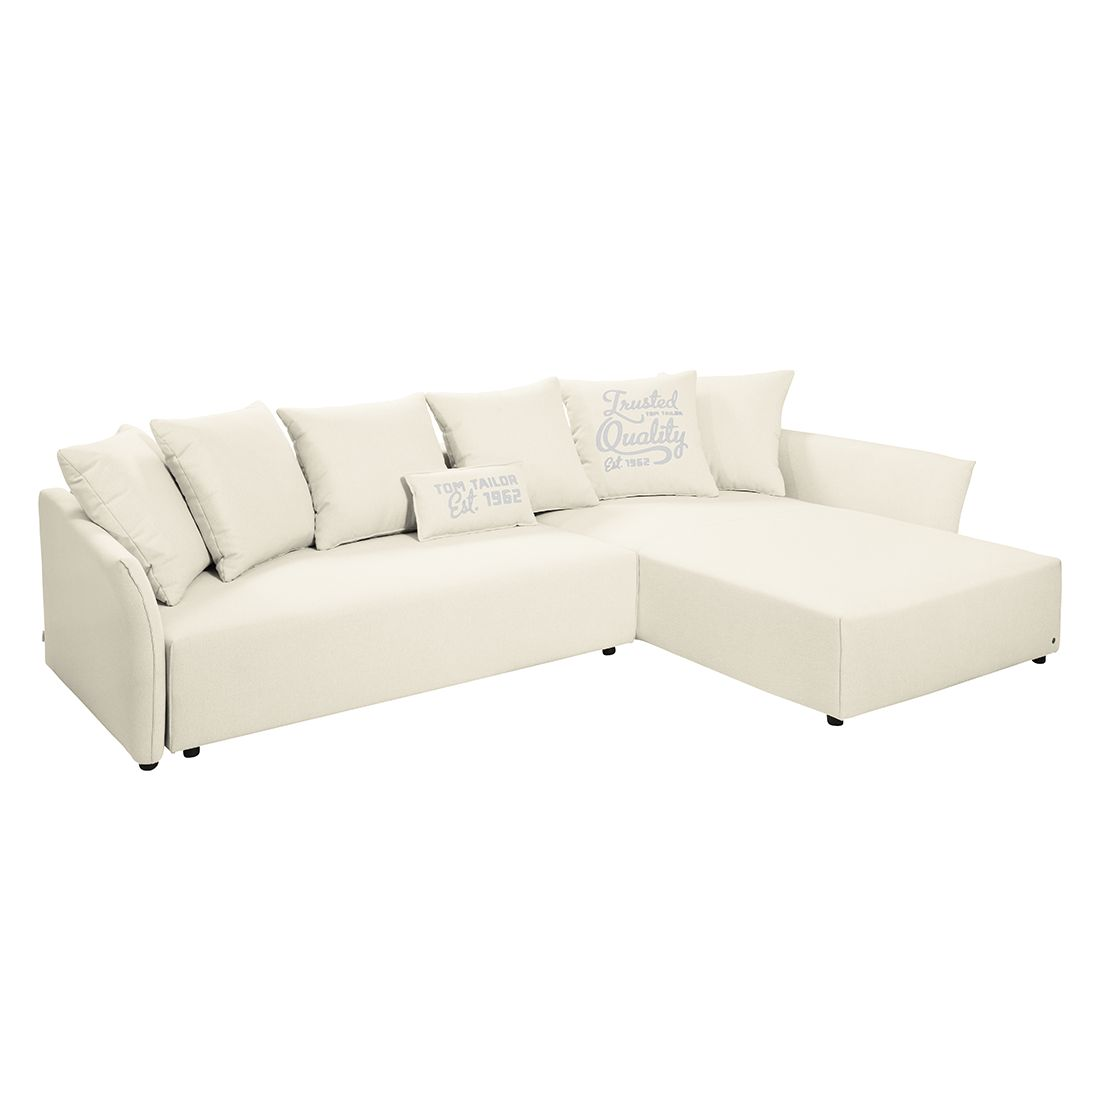 Full Size of Tom Tailor Sofa Heaven Xl Casual Couch Elements Style Cube Nordic Chic Pure Ecksofa Wings Mit Schlaffunktion Webstoff Longchair Gelb Garten Bewässerung Sofa Tom Tailor Sofa